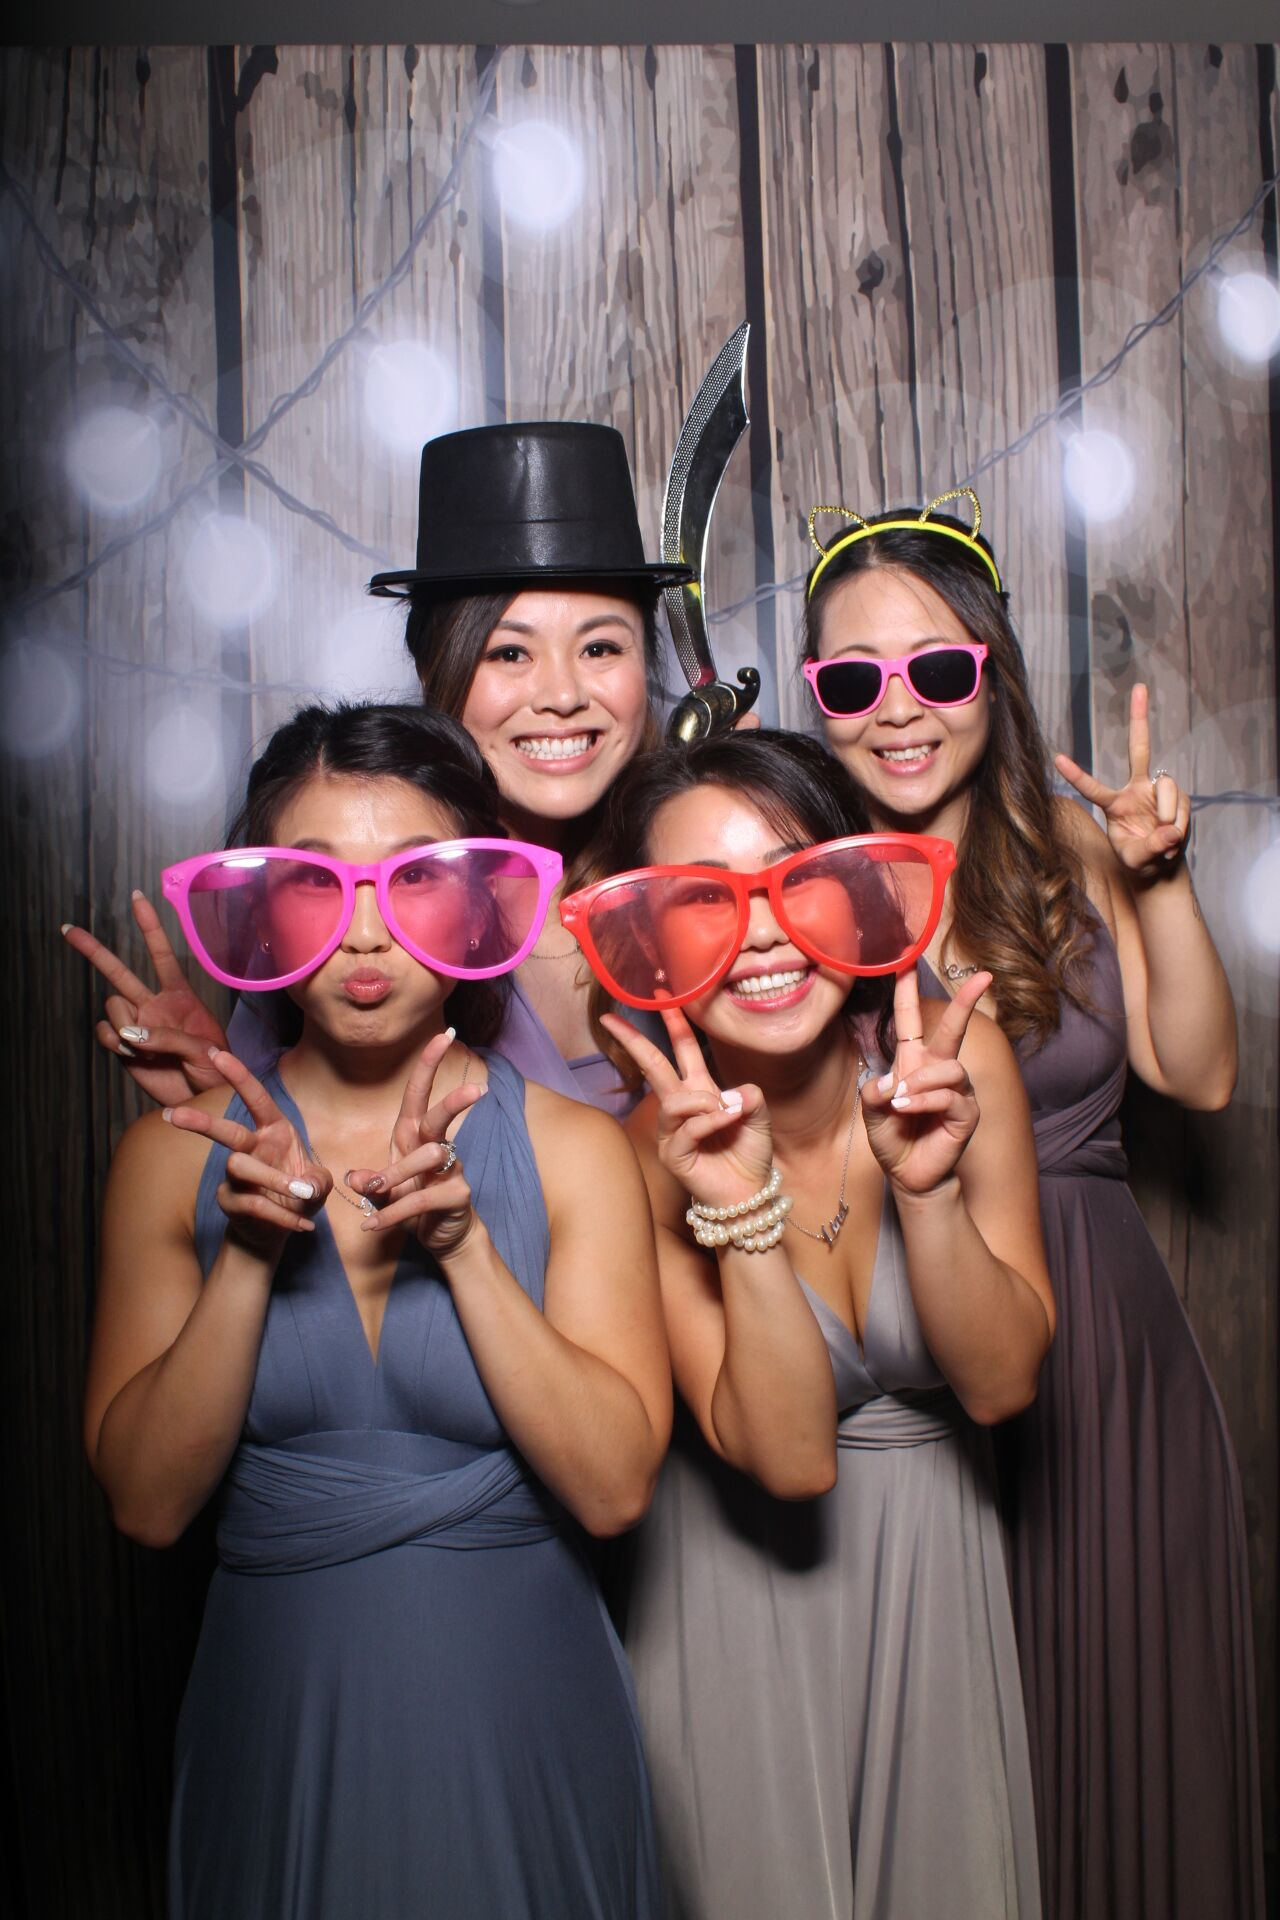 corporate events, local business, oregon events, photo booth rentals, holiday party